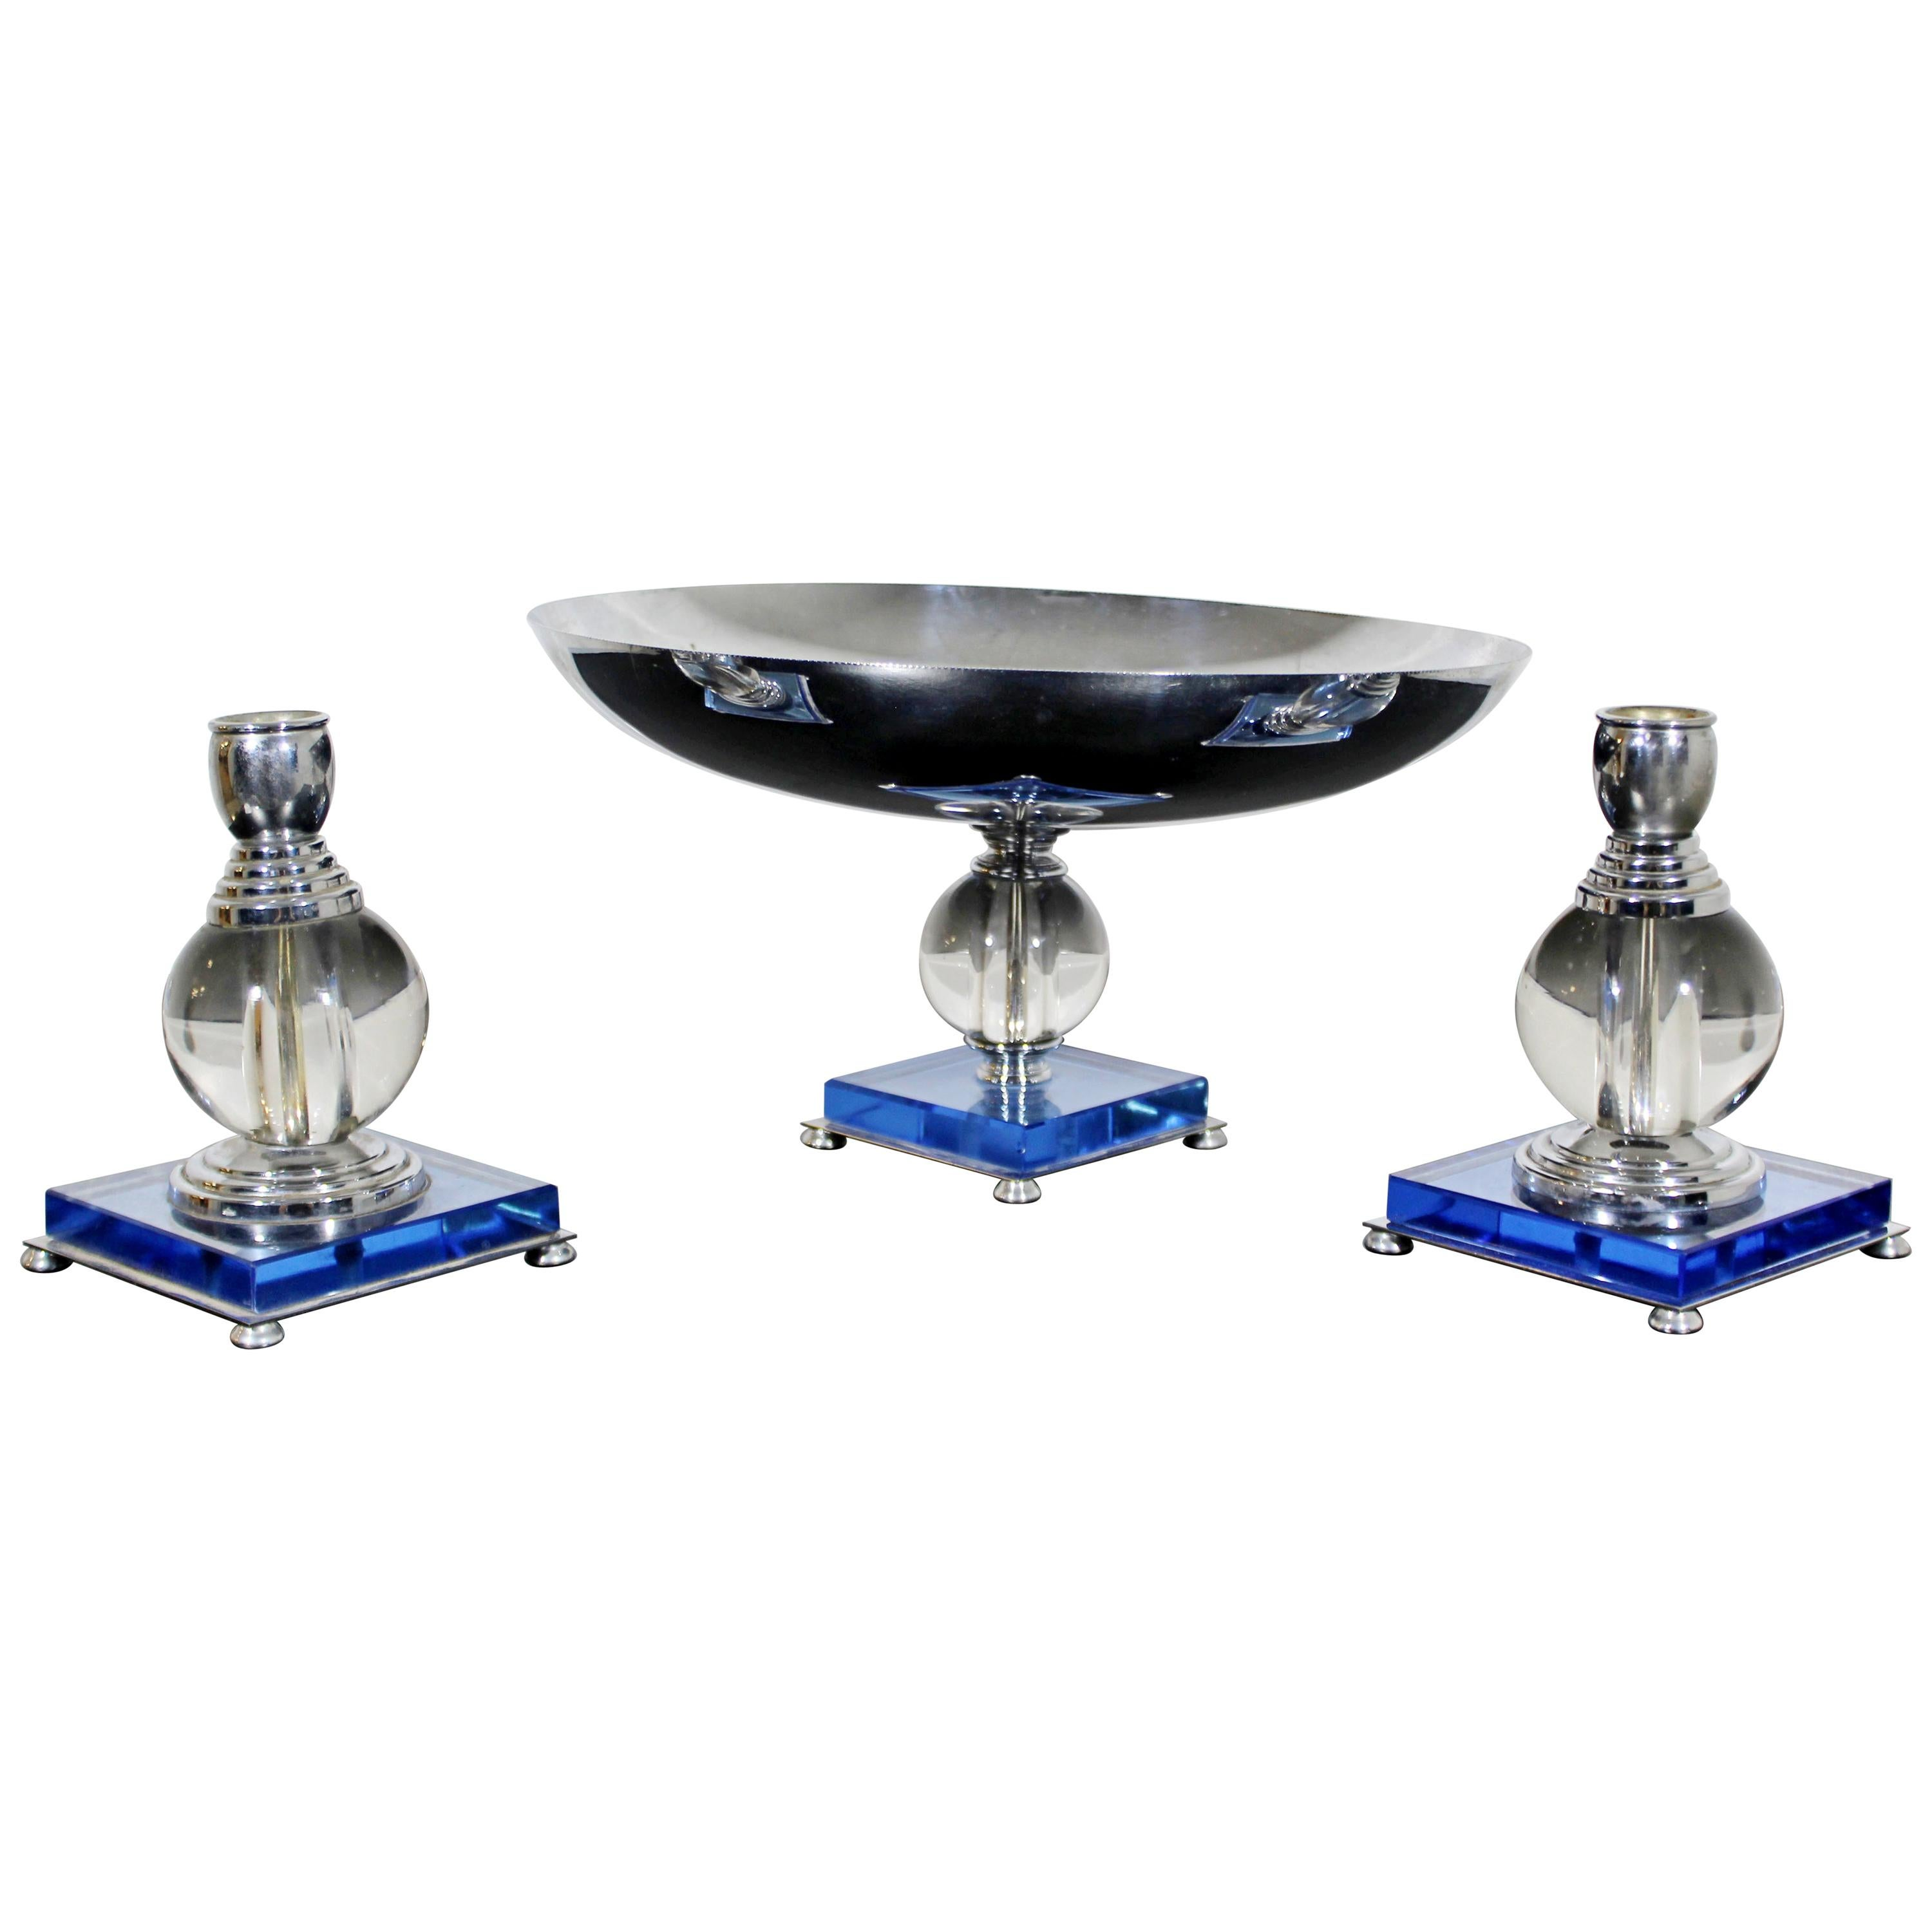 Art Deco Pair Mautner Farber Chromium-Plated Candleholders and Serving Dish Blue